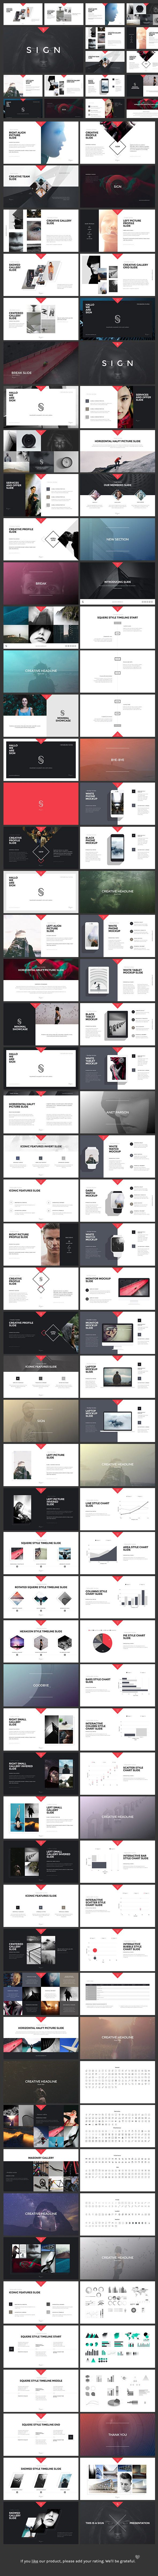 SIGN Keynote Presentation Template. Download here: http://graphicriver.net/item/sign-keynote-presentation/14785133?ref=ksioks